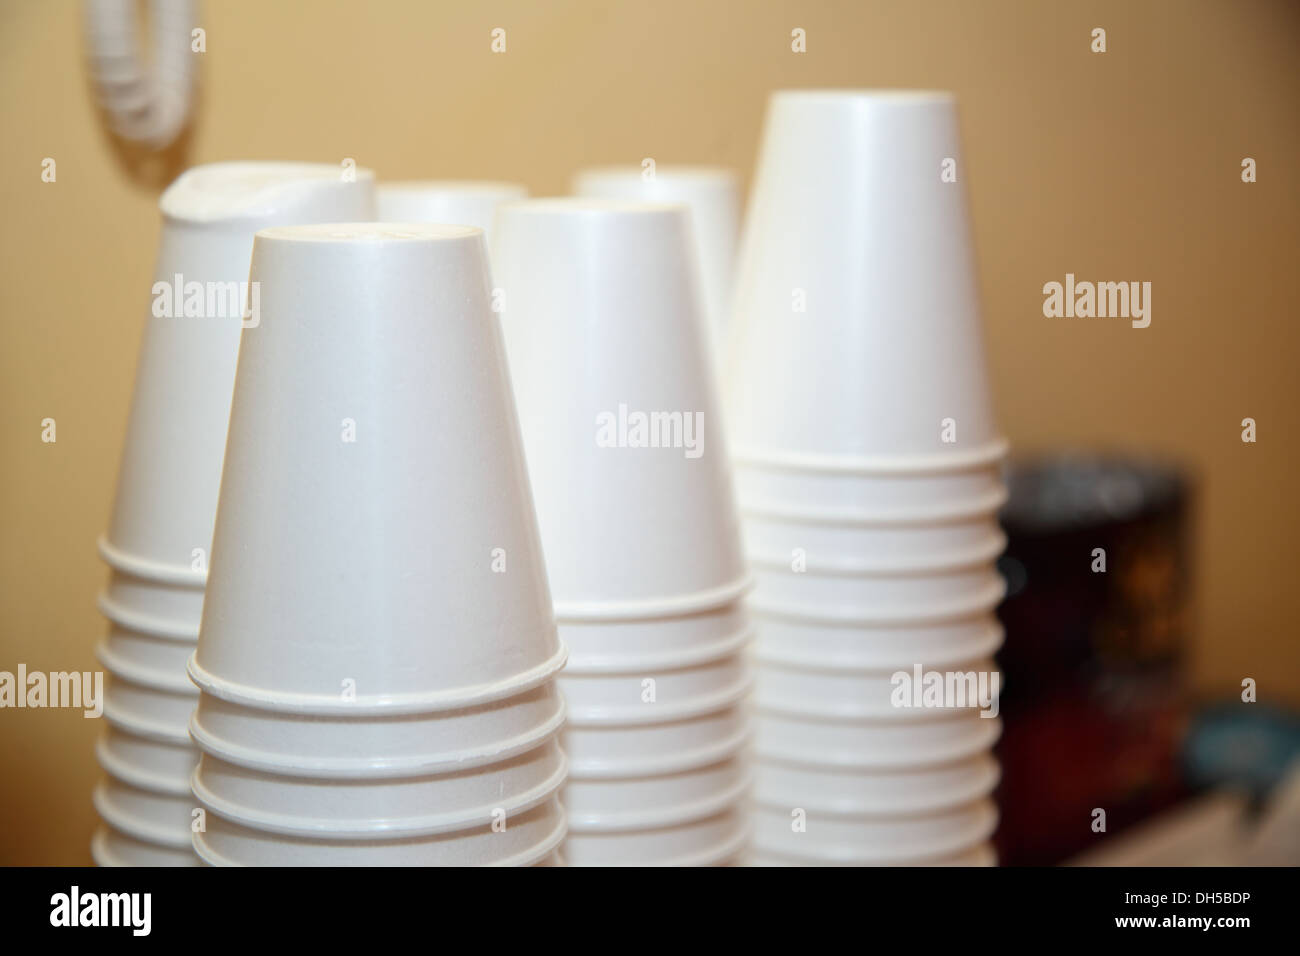 Charmant Disposable Plastic Kitchen Utensils Pile Stack Cups On Table